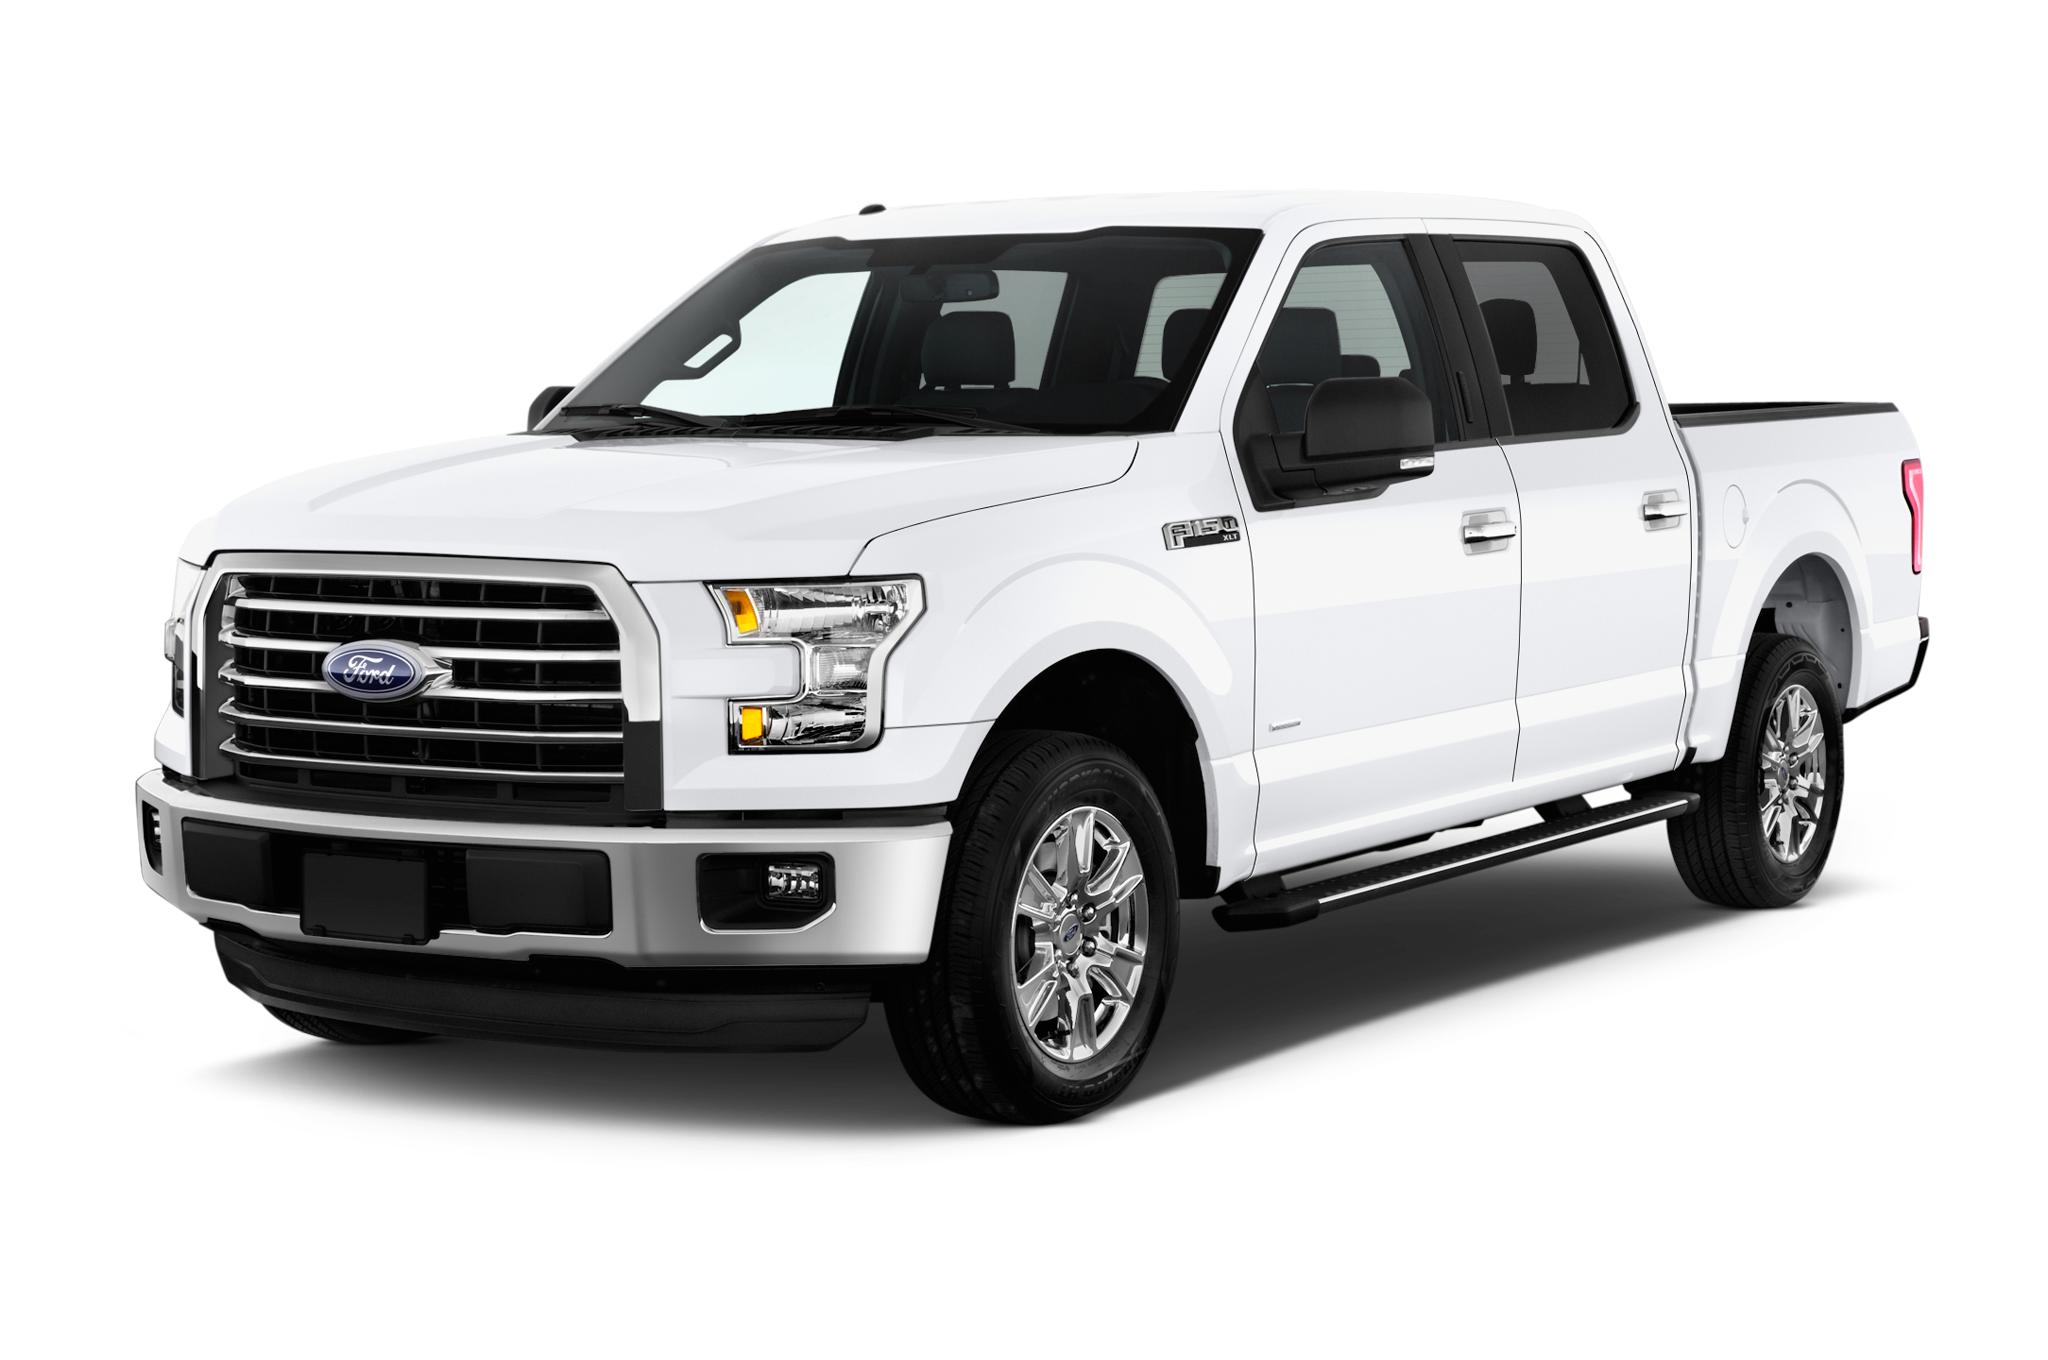 2017 ford f 150 xl 4x4 supercrew 5 1 2 box specs and features msn autos. Black Bedroom Furniture Sets. Home Design Ideas